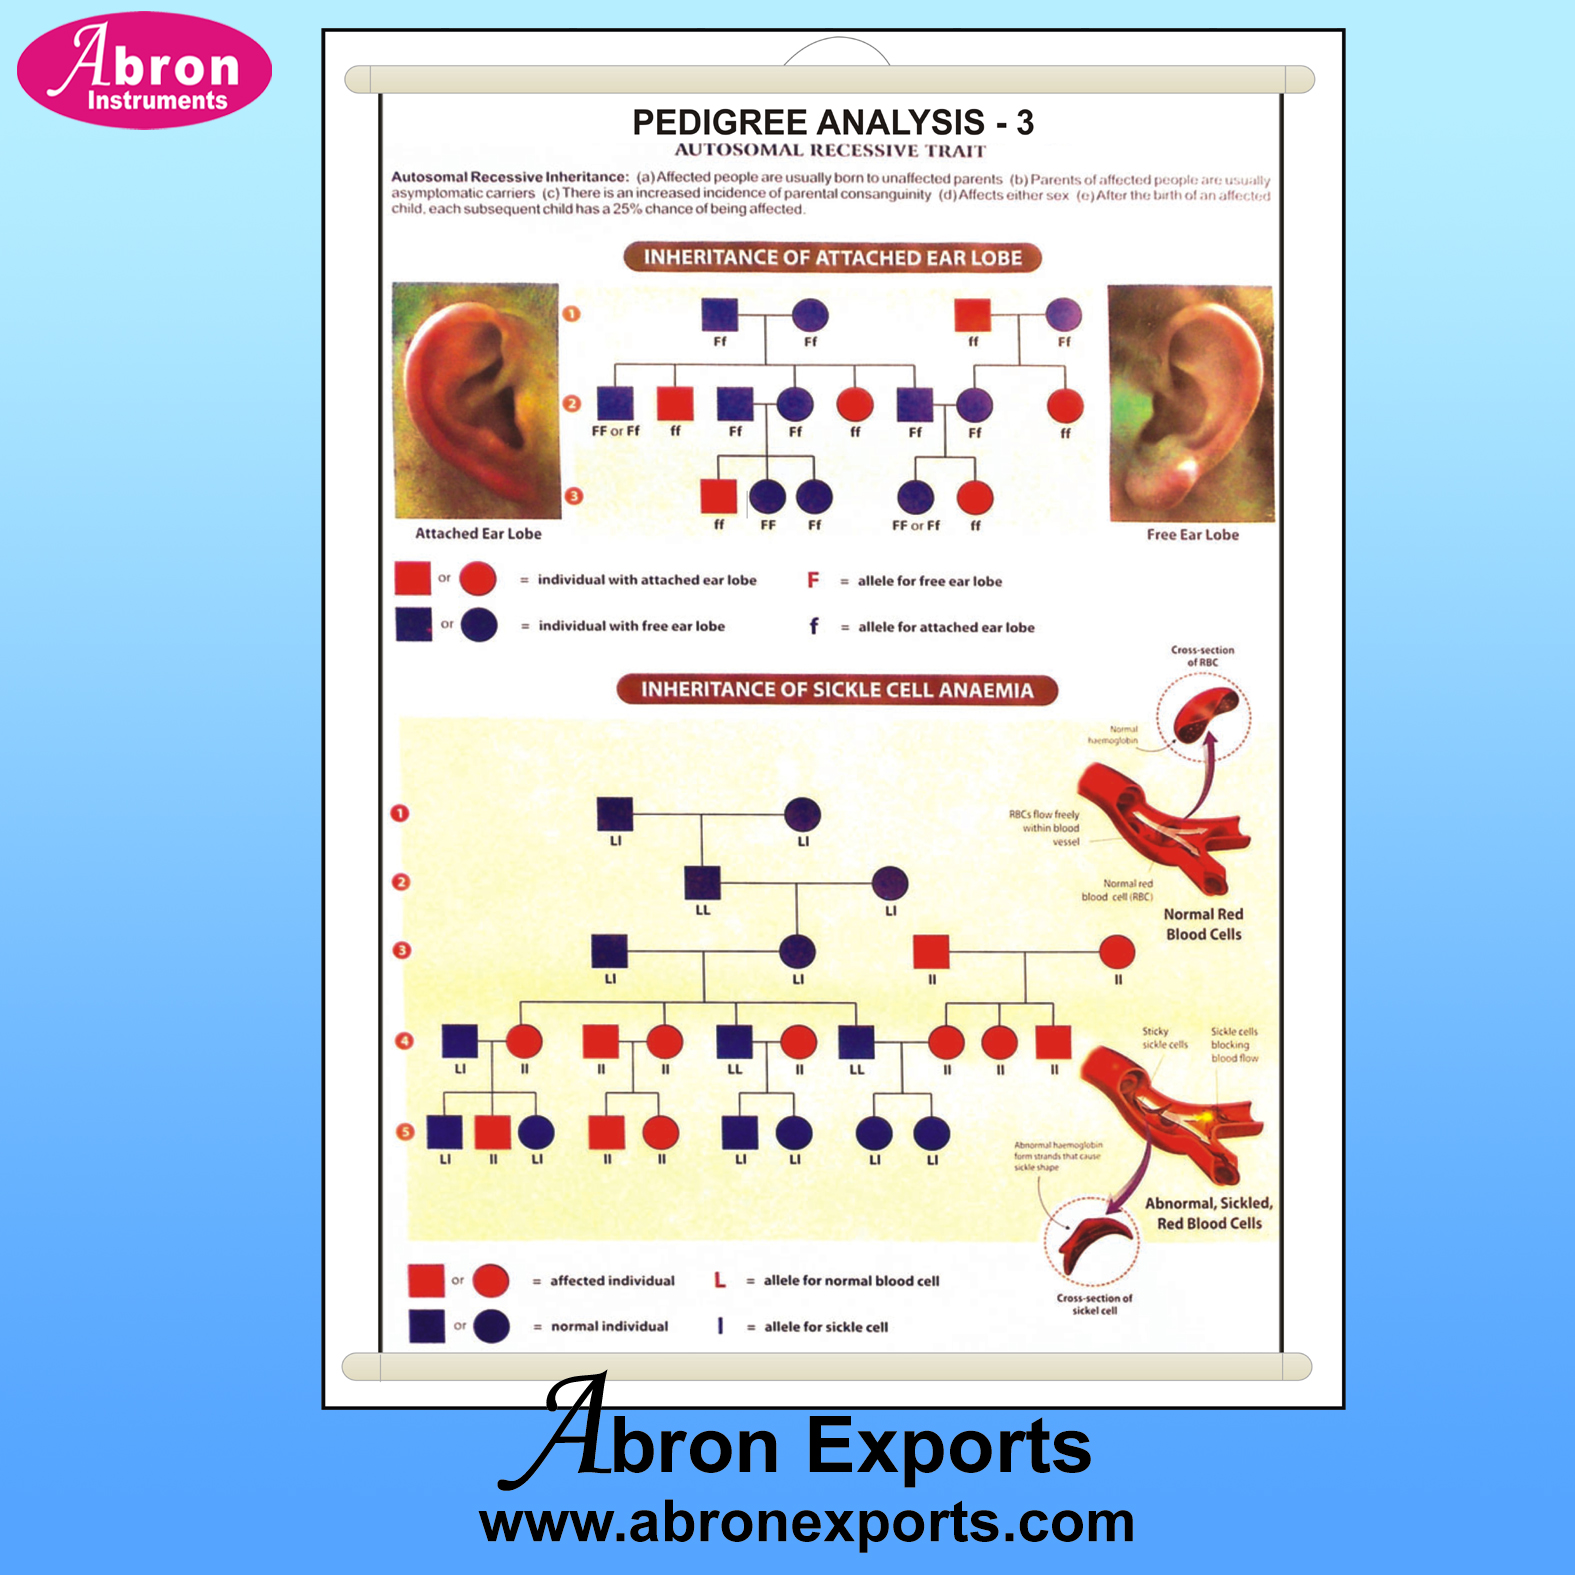 Chart pedigree analysis 3 gertics ear lobe shape sickle cell & evolution 75x100cm with roller abron AB-202PA3